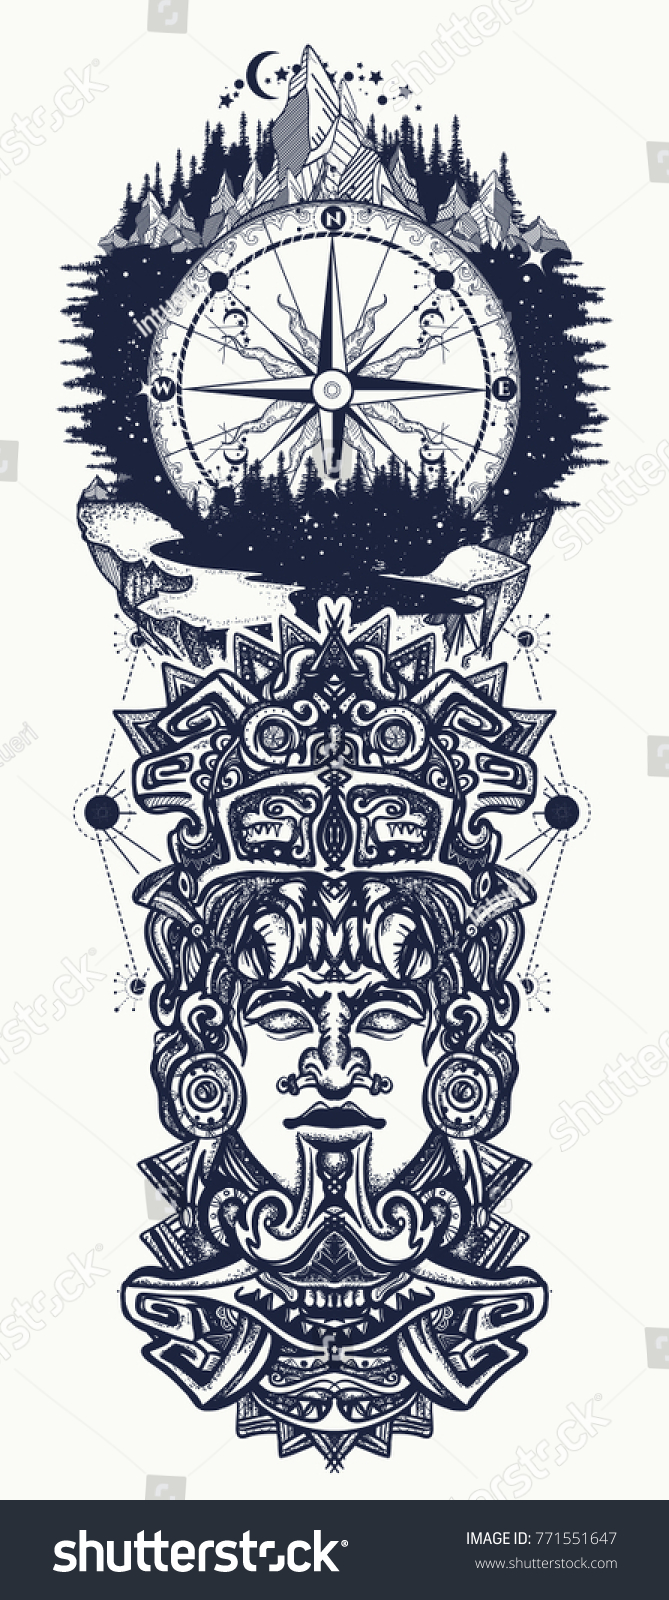 Aztec Temple Tattoo ancient aztec totem mountains compass mexican stock image